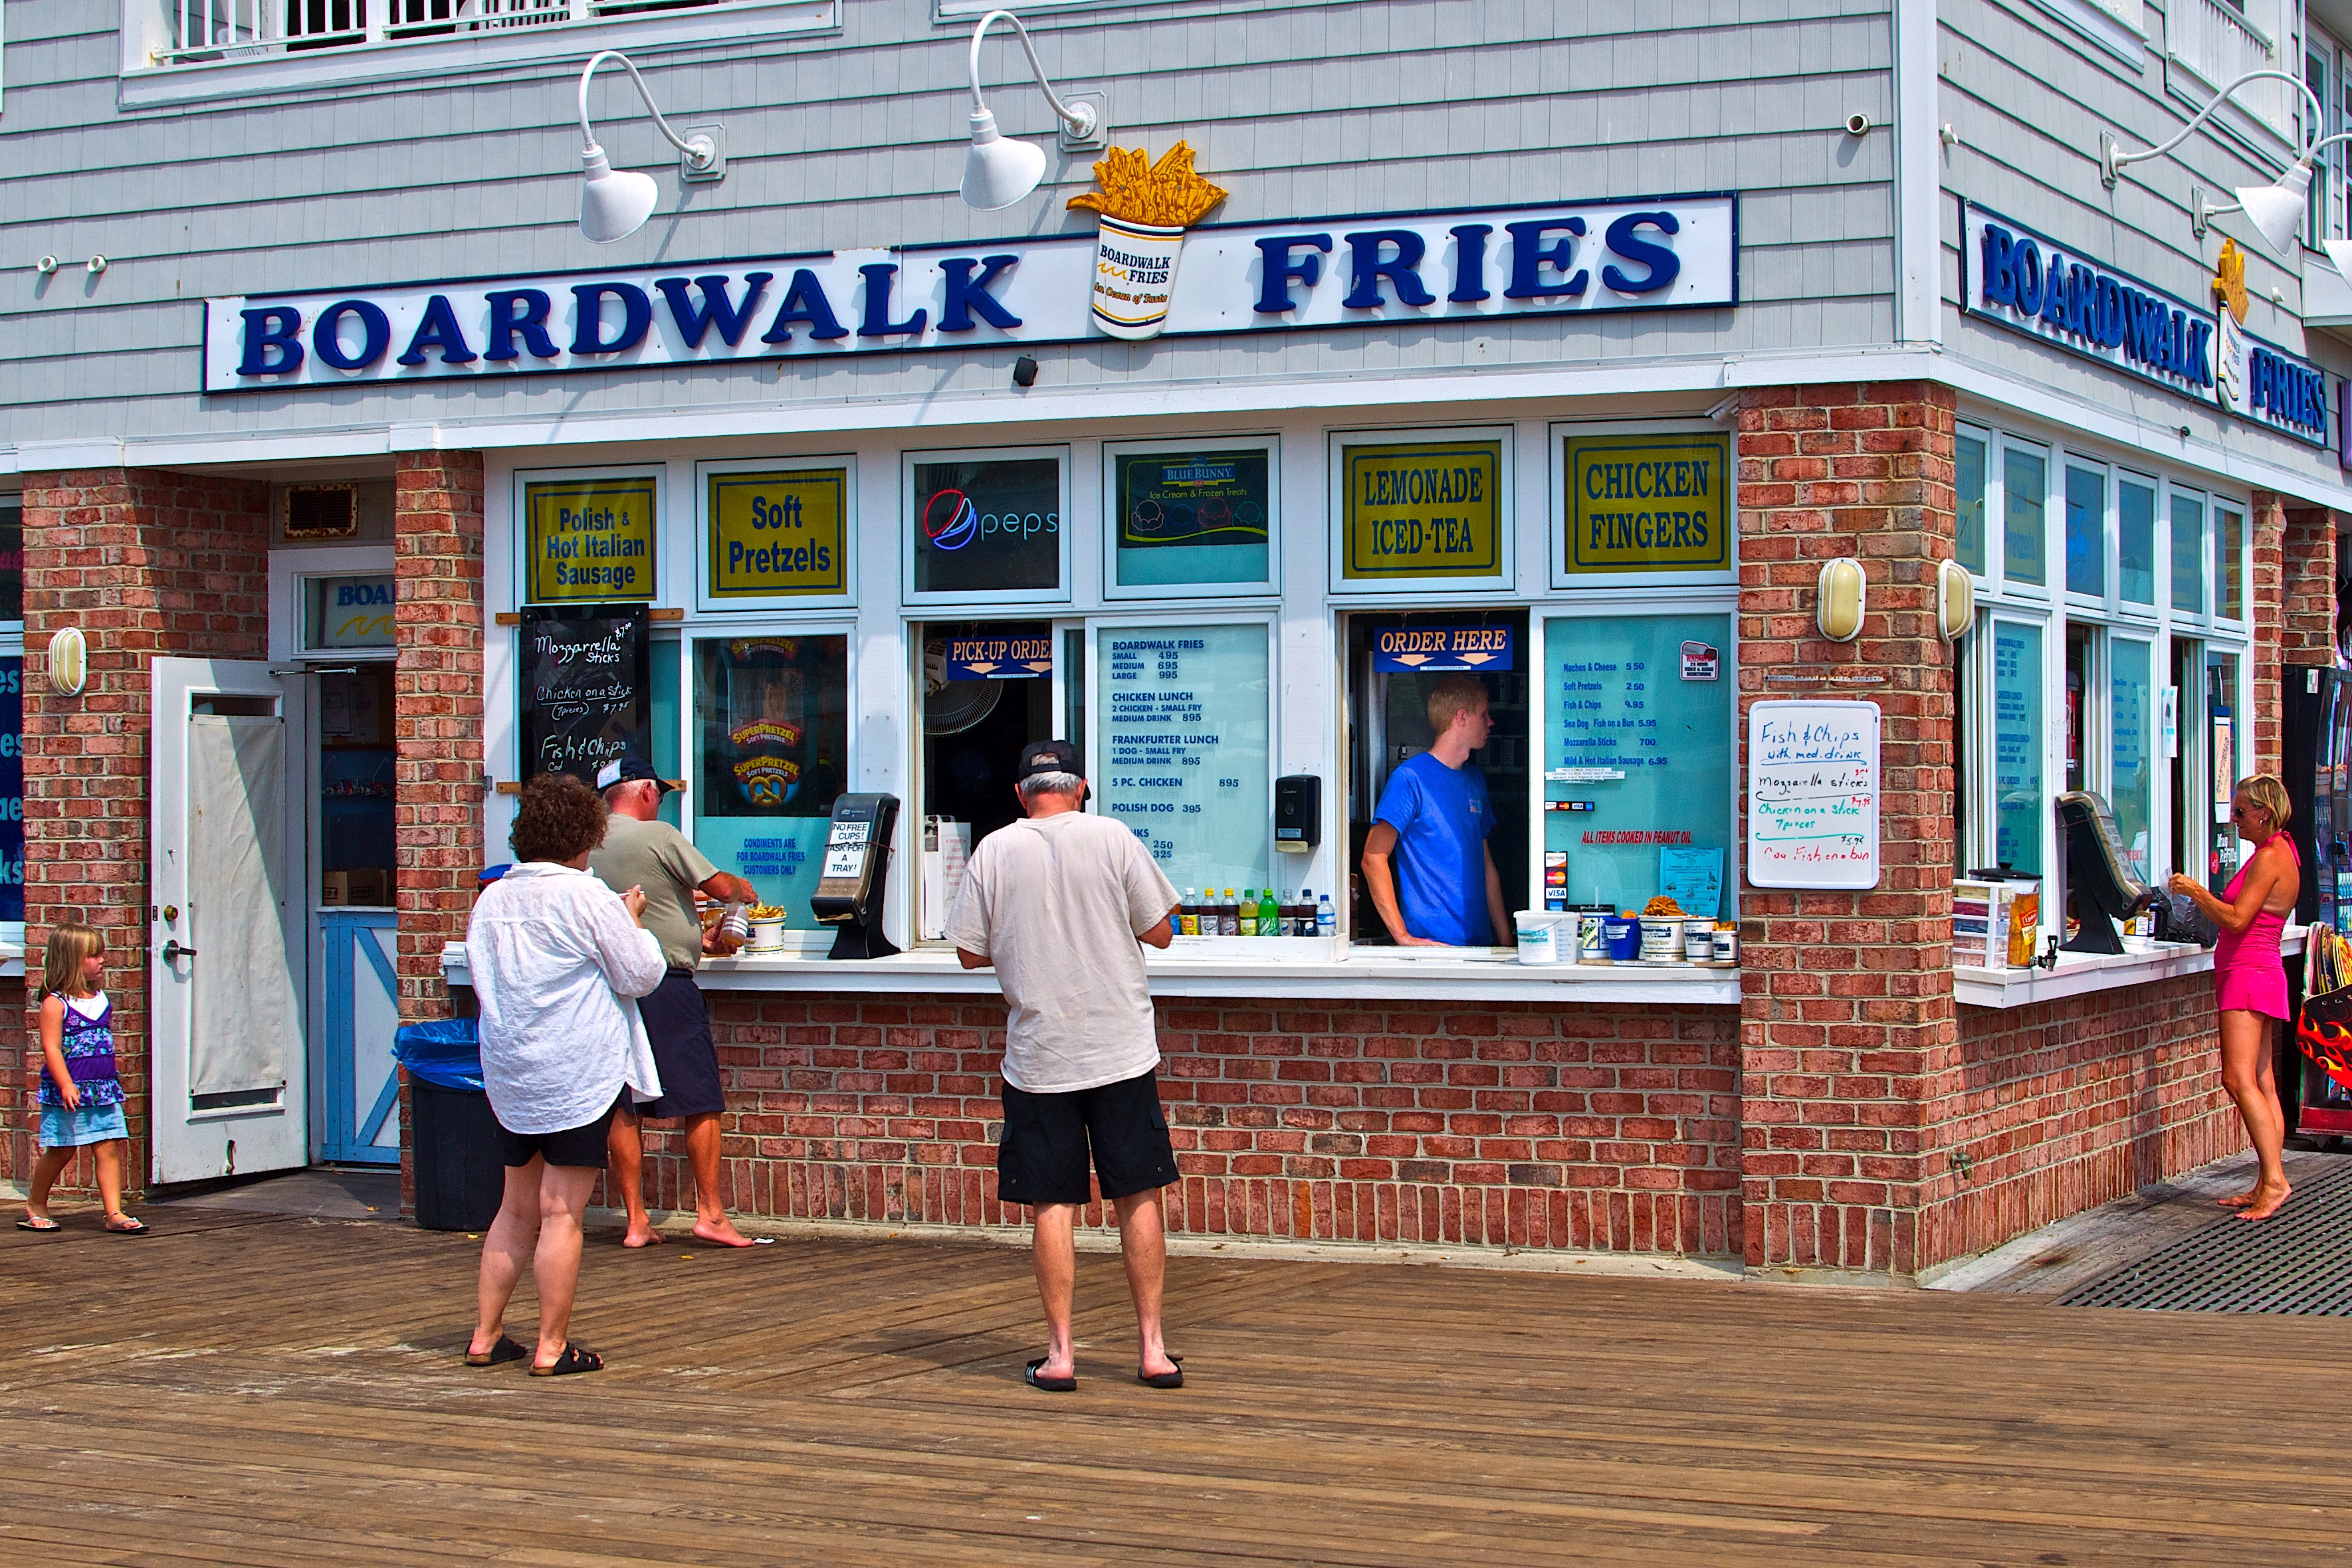 Boardwalk Fries | Explore -Jeffrey-'s photos on Flickr. -Jef ...